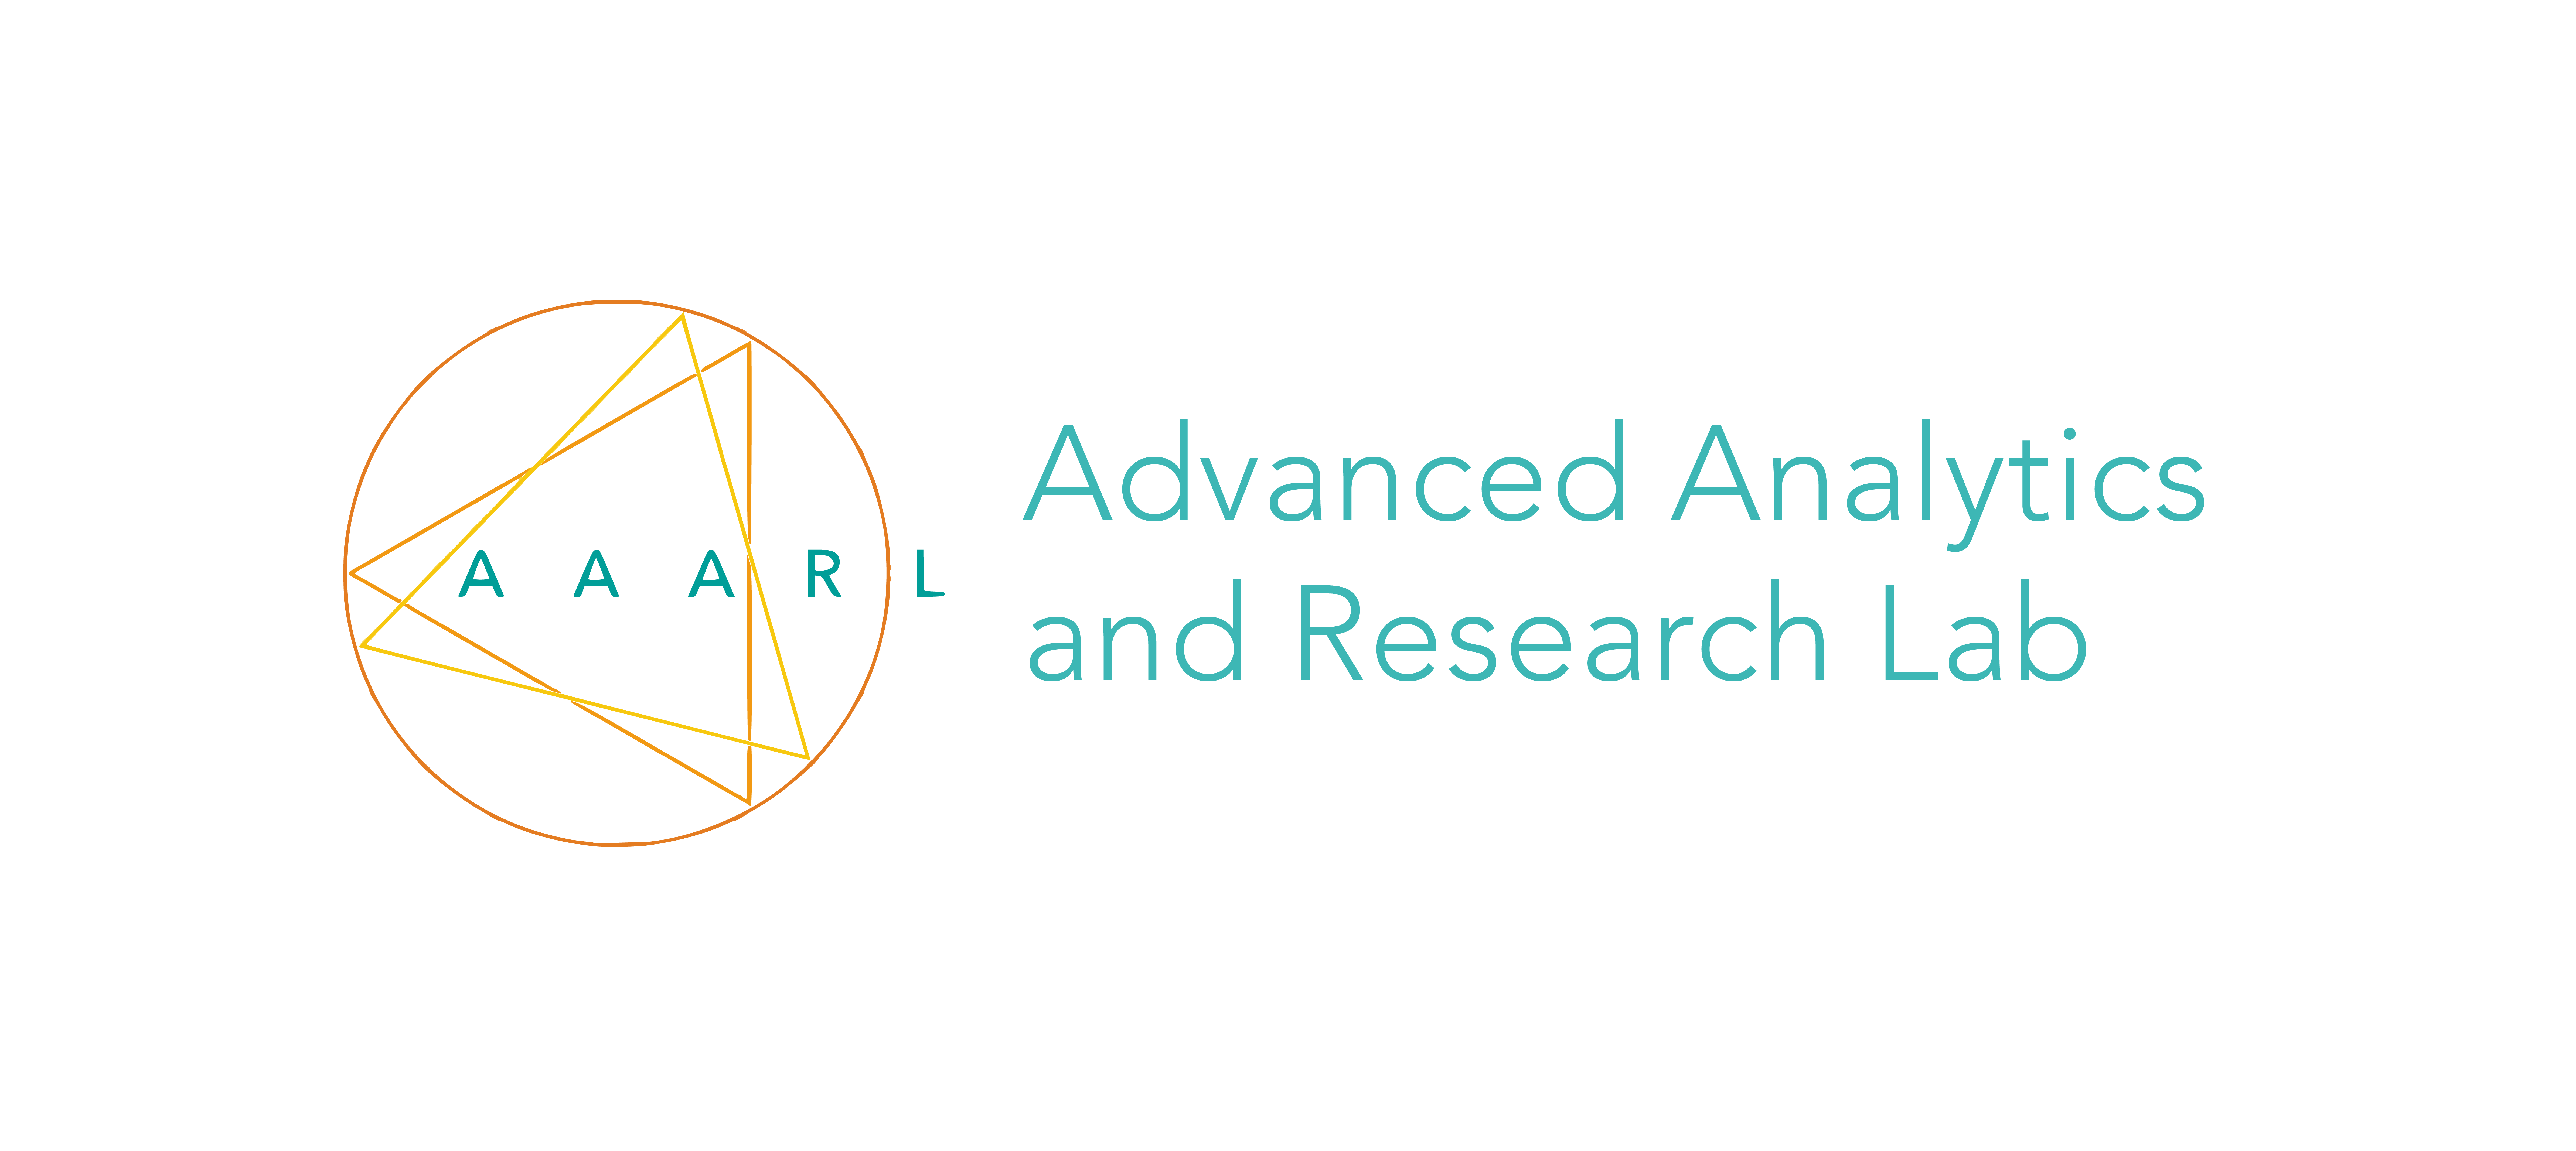 Advanced Analytics and Research Lab